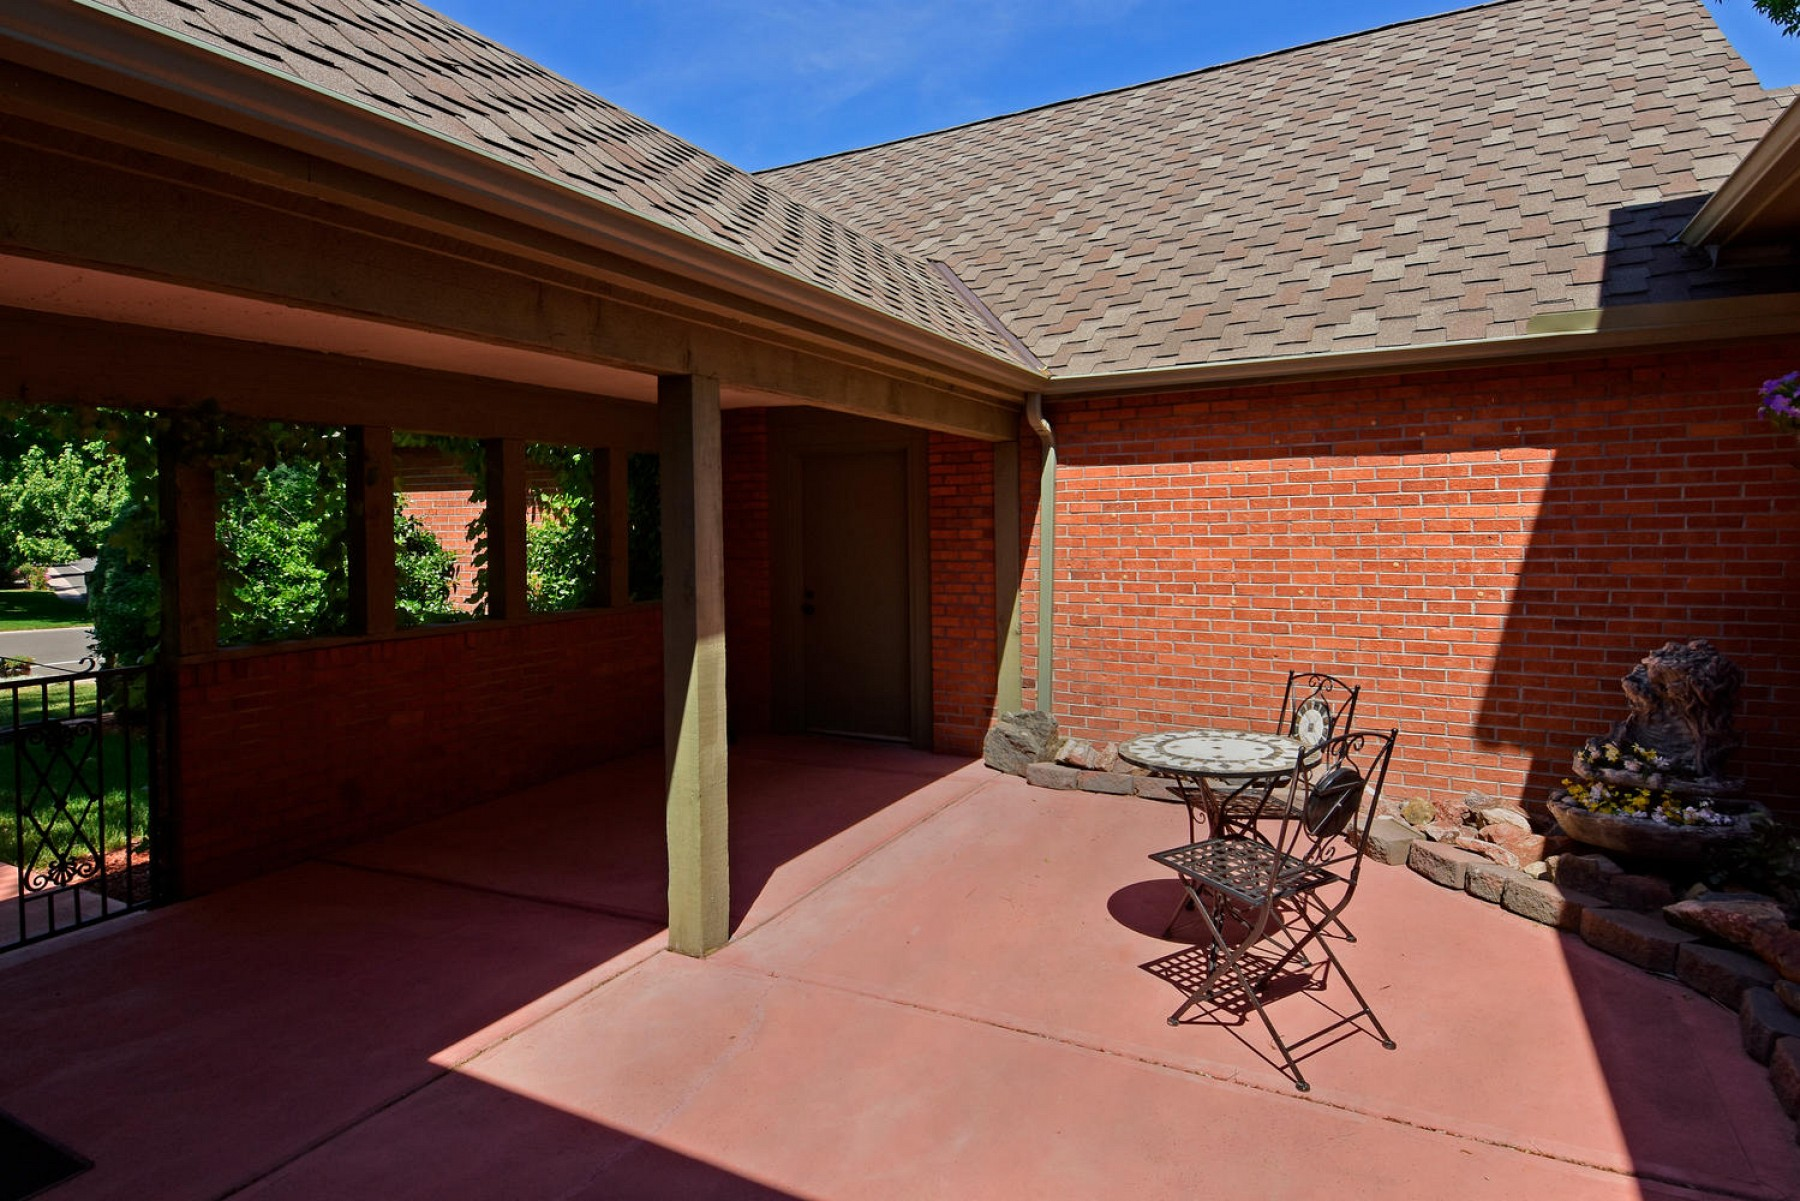 22 Village Court, Littleton, CO 80123